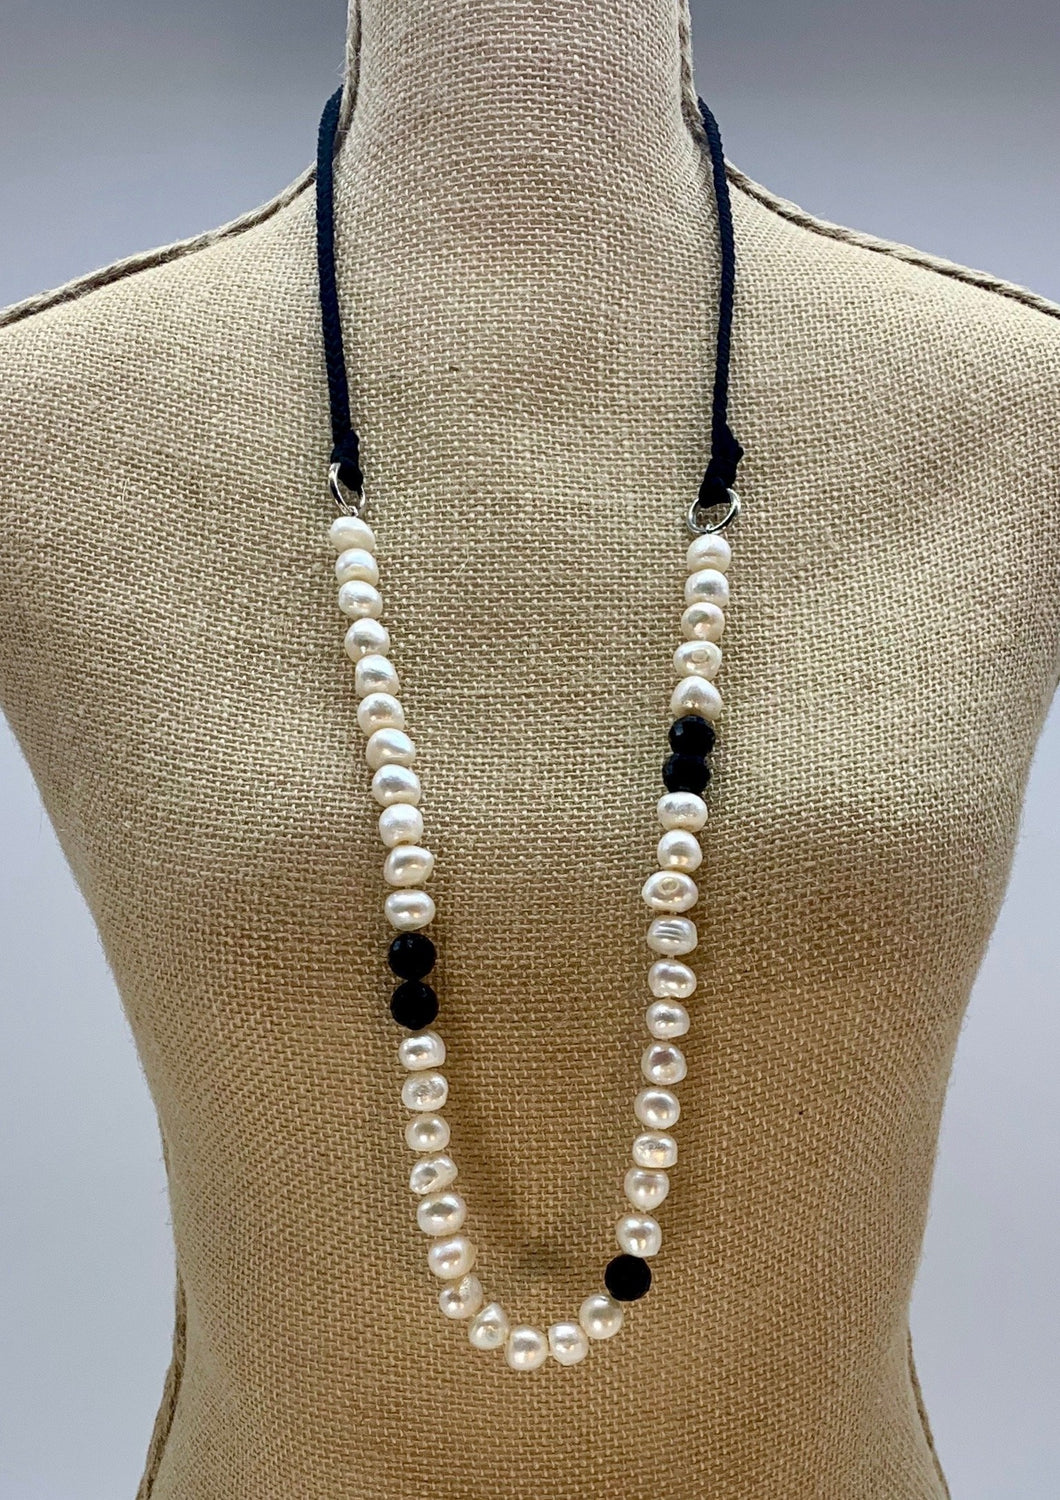 CADENCE NECKLACE  - 006 - BLACK WHITE